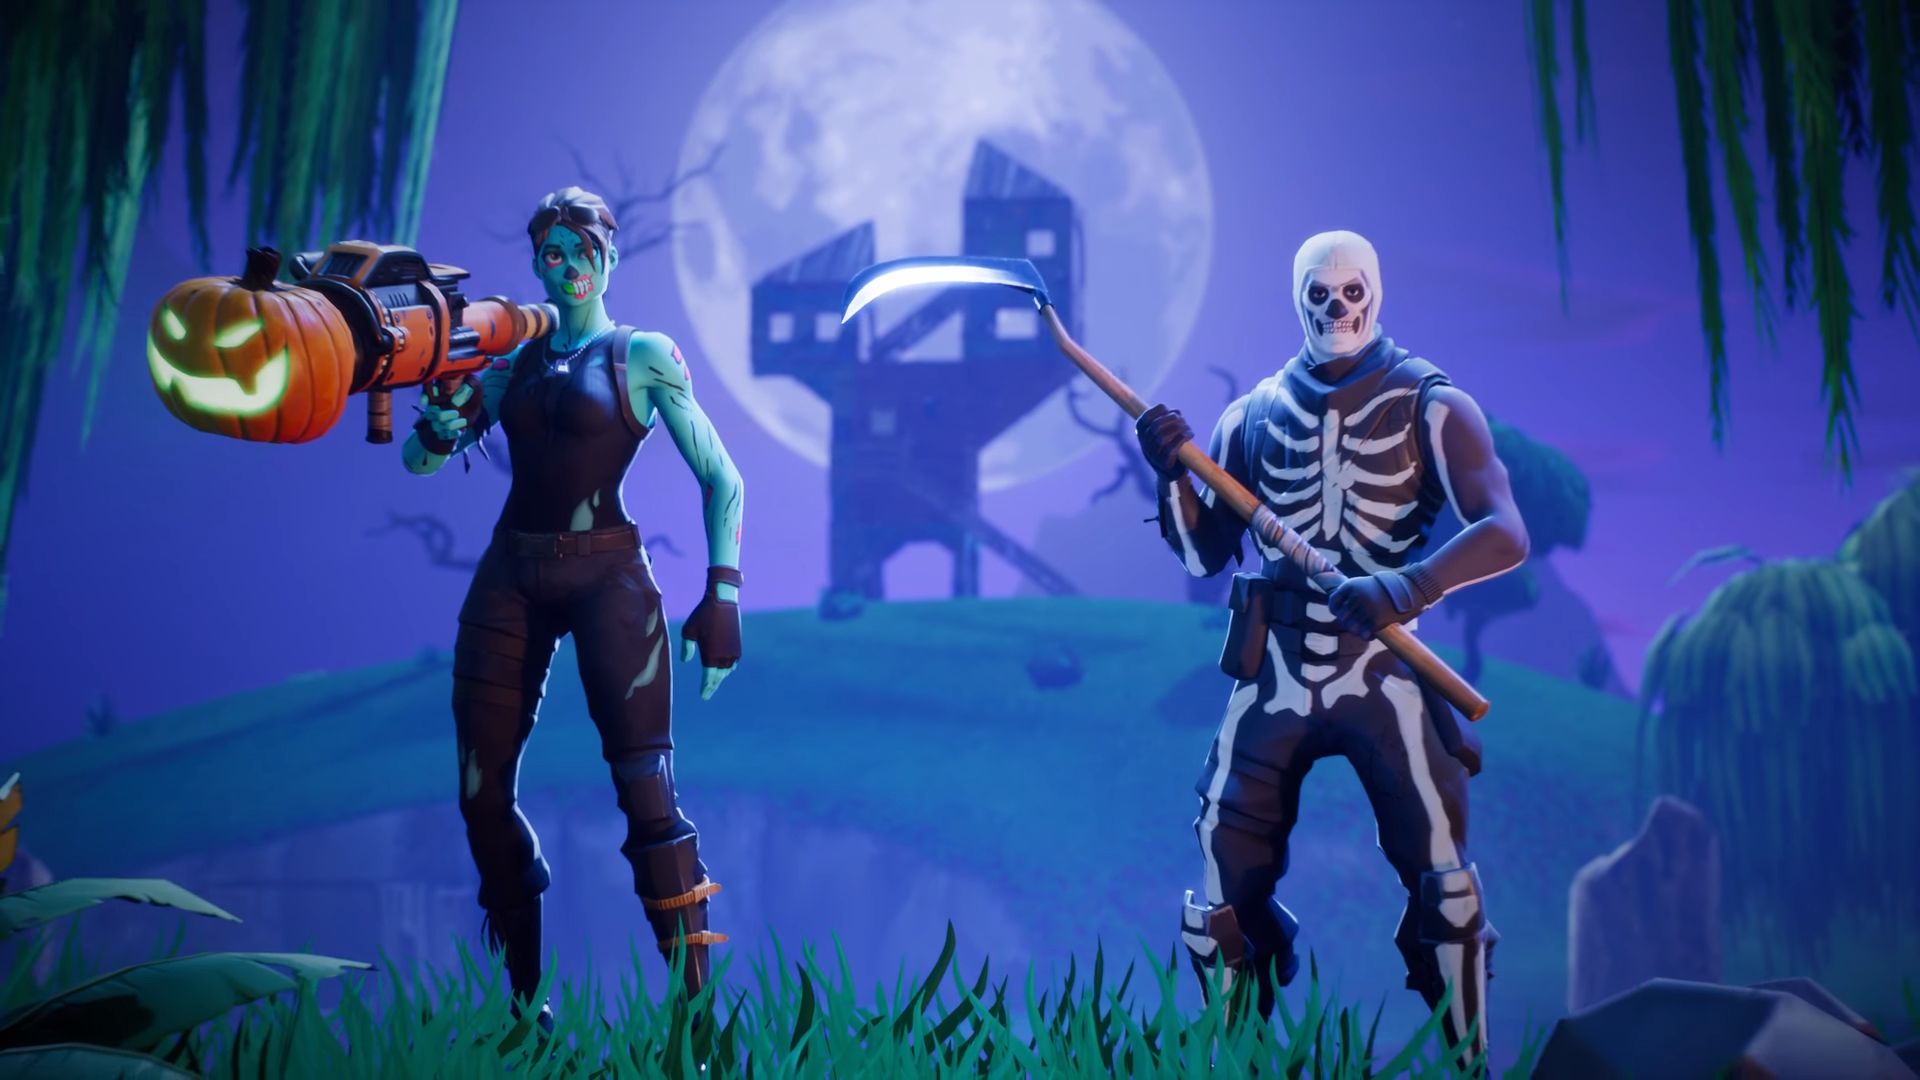 535 Fortnite Hd Wallpapers Background Images Wallpaper Abyss